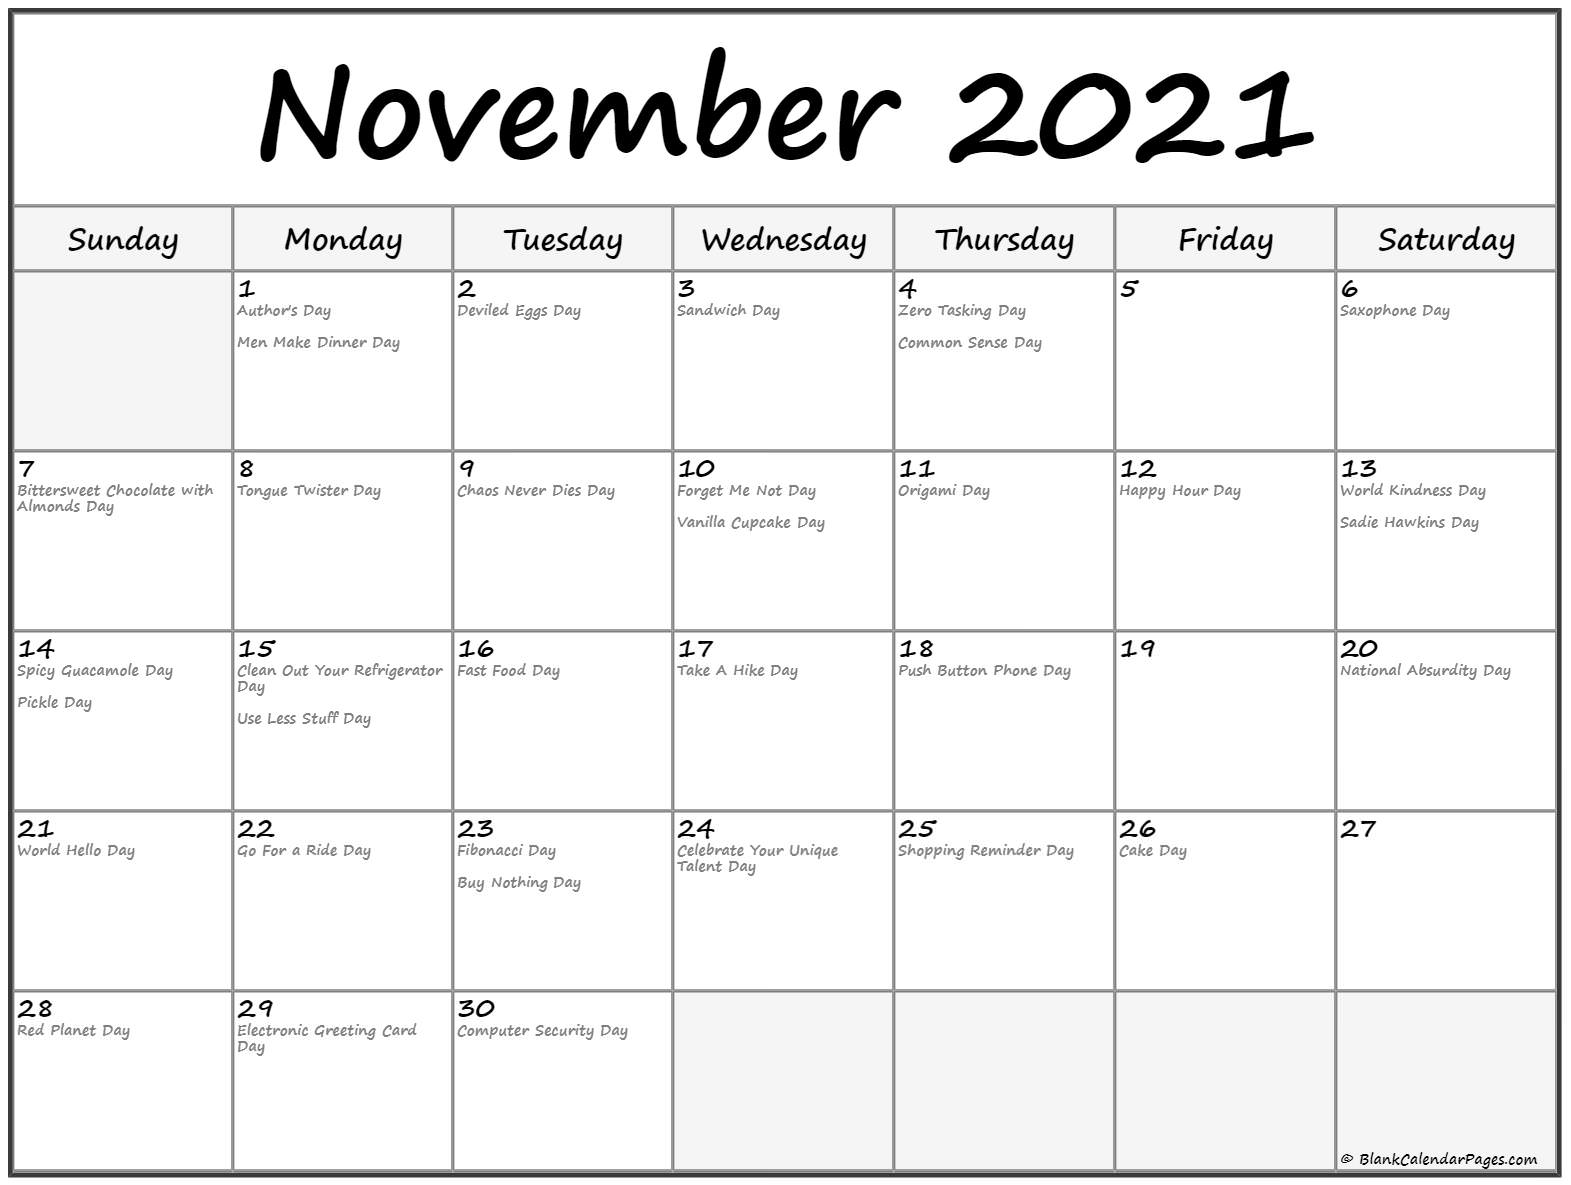 November 2019 funny holidays calendar